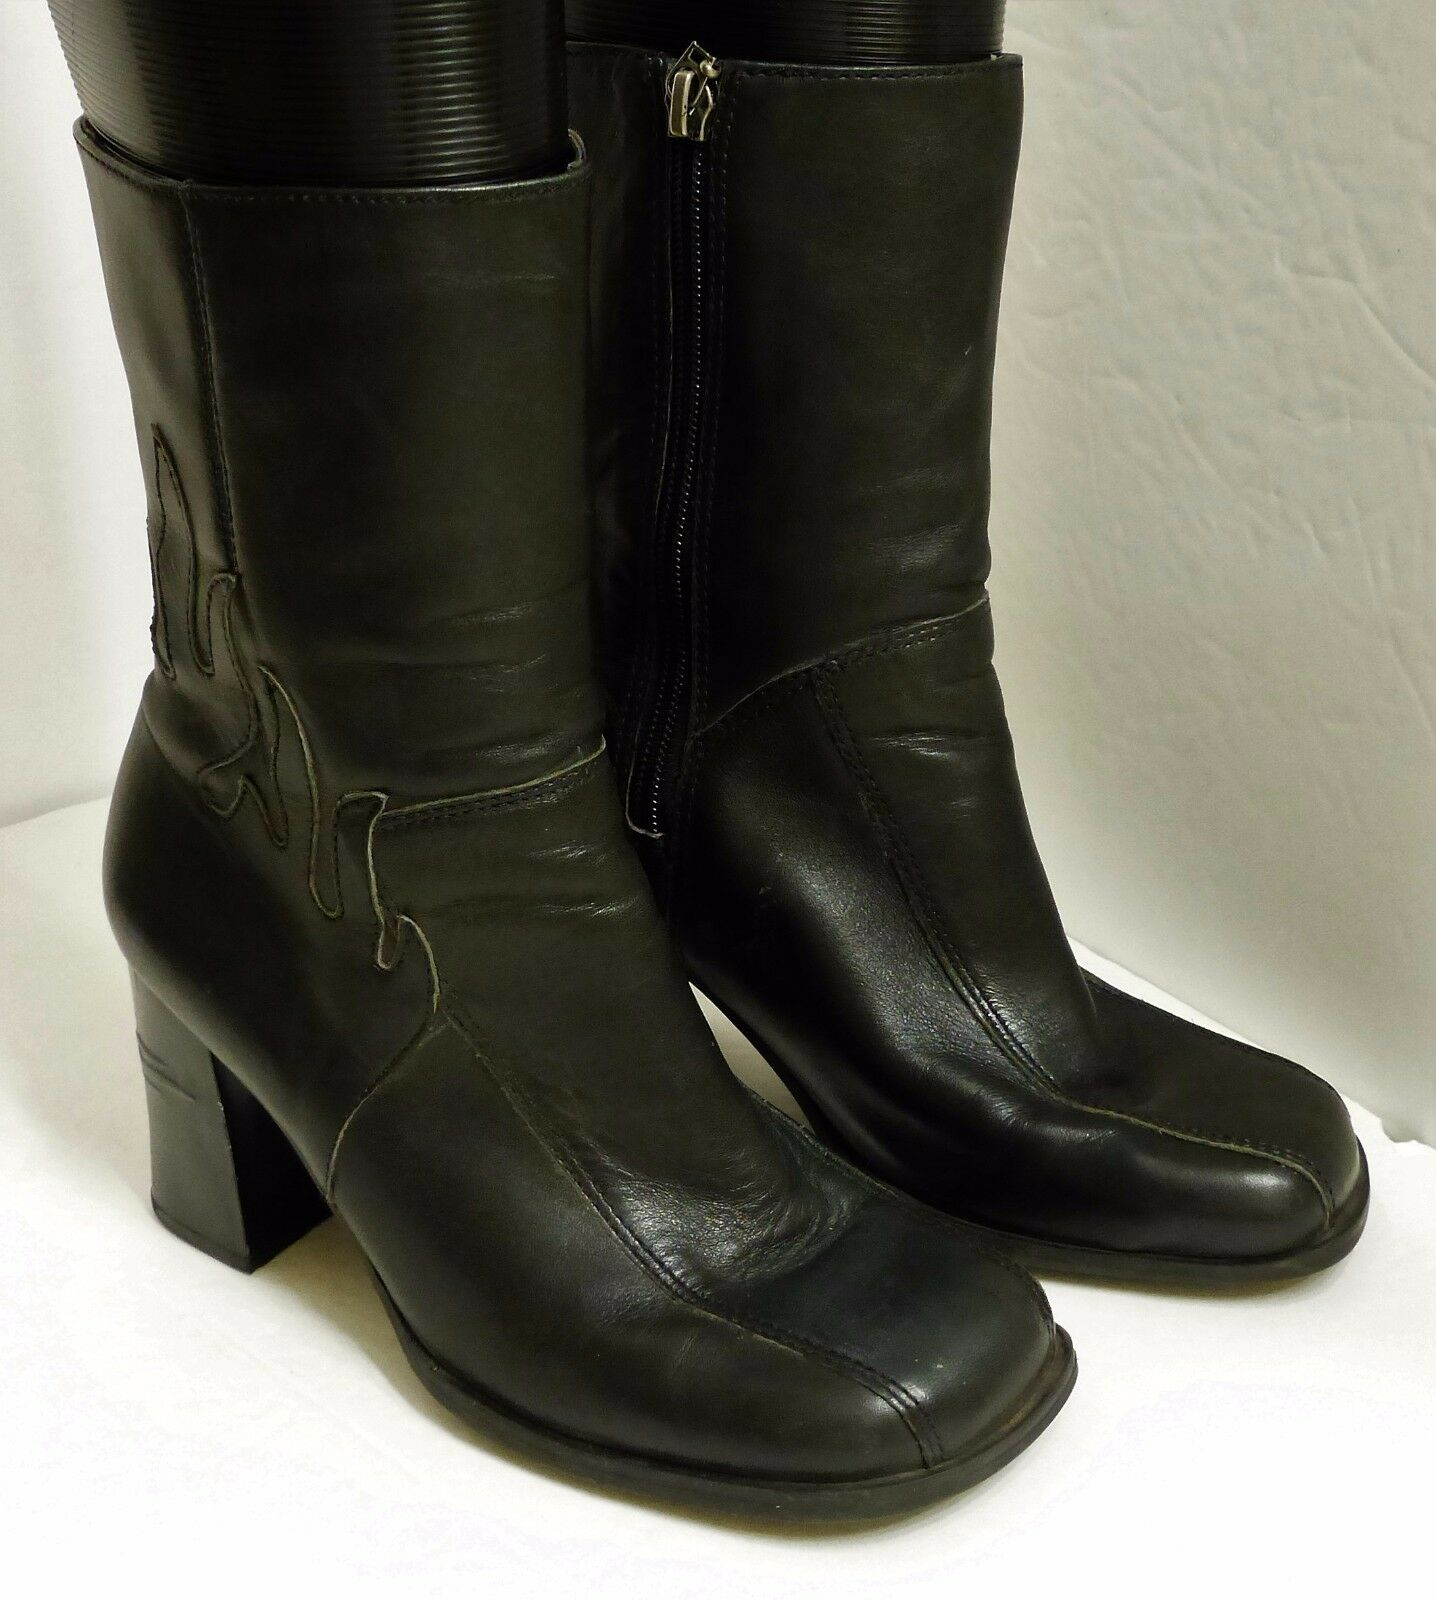 VGUC Harley-Davidson Women's Size 6 Black Leather Square Toe Motorcycle Boots